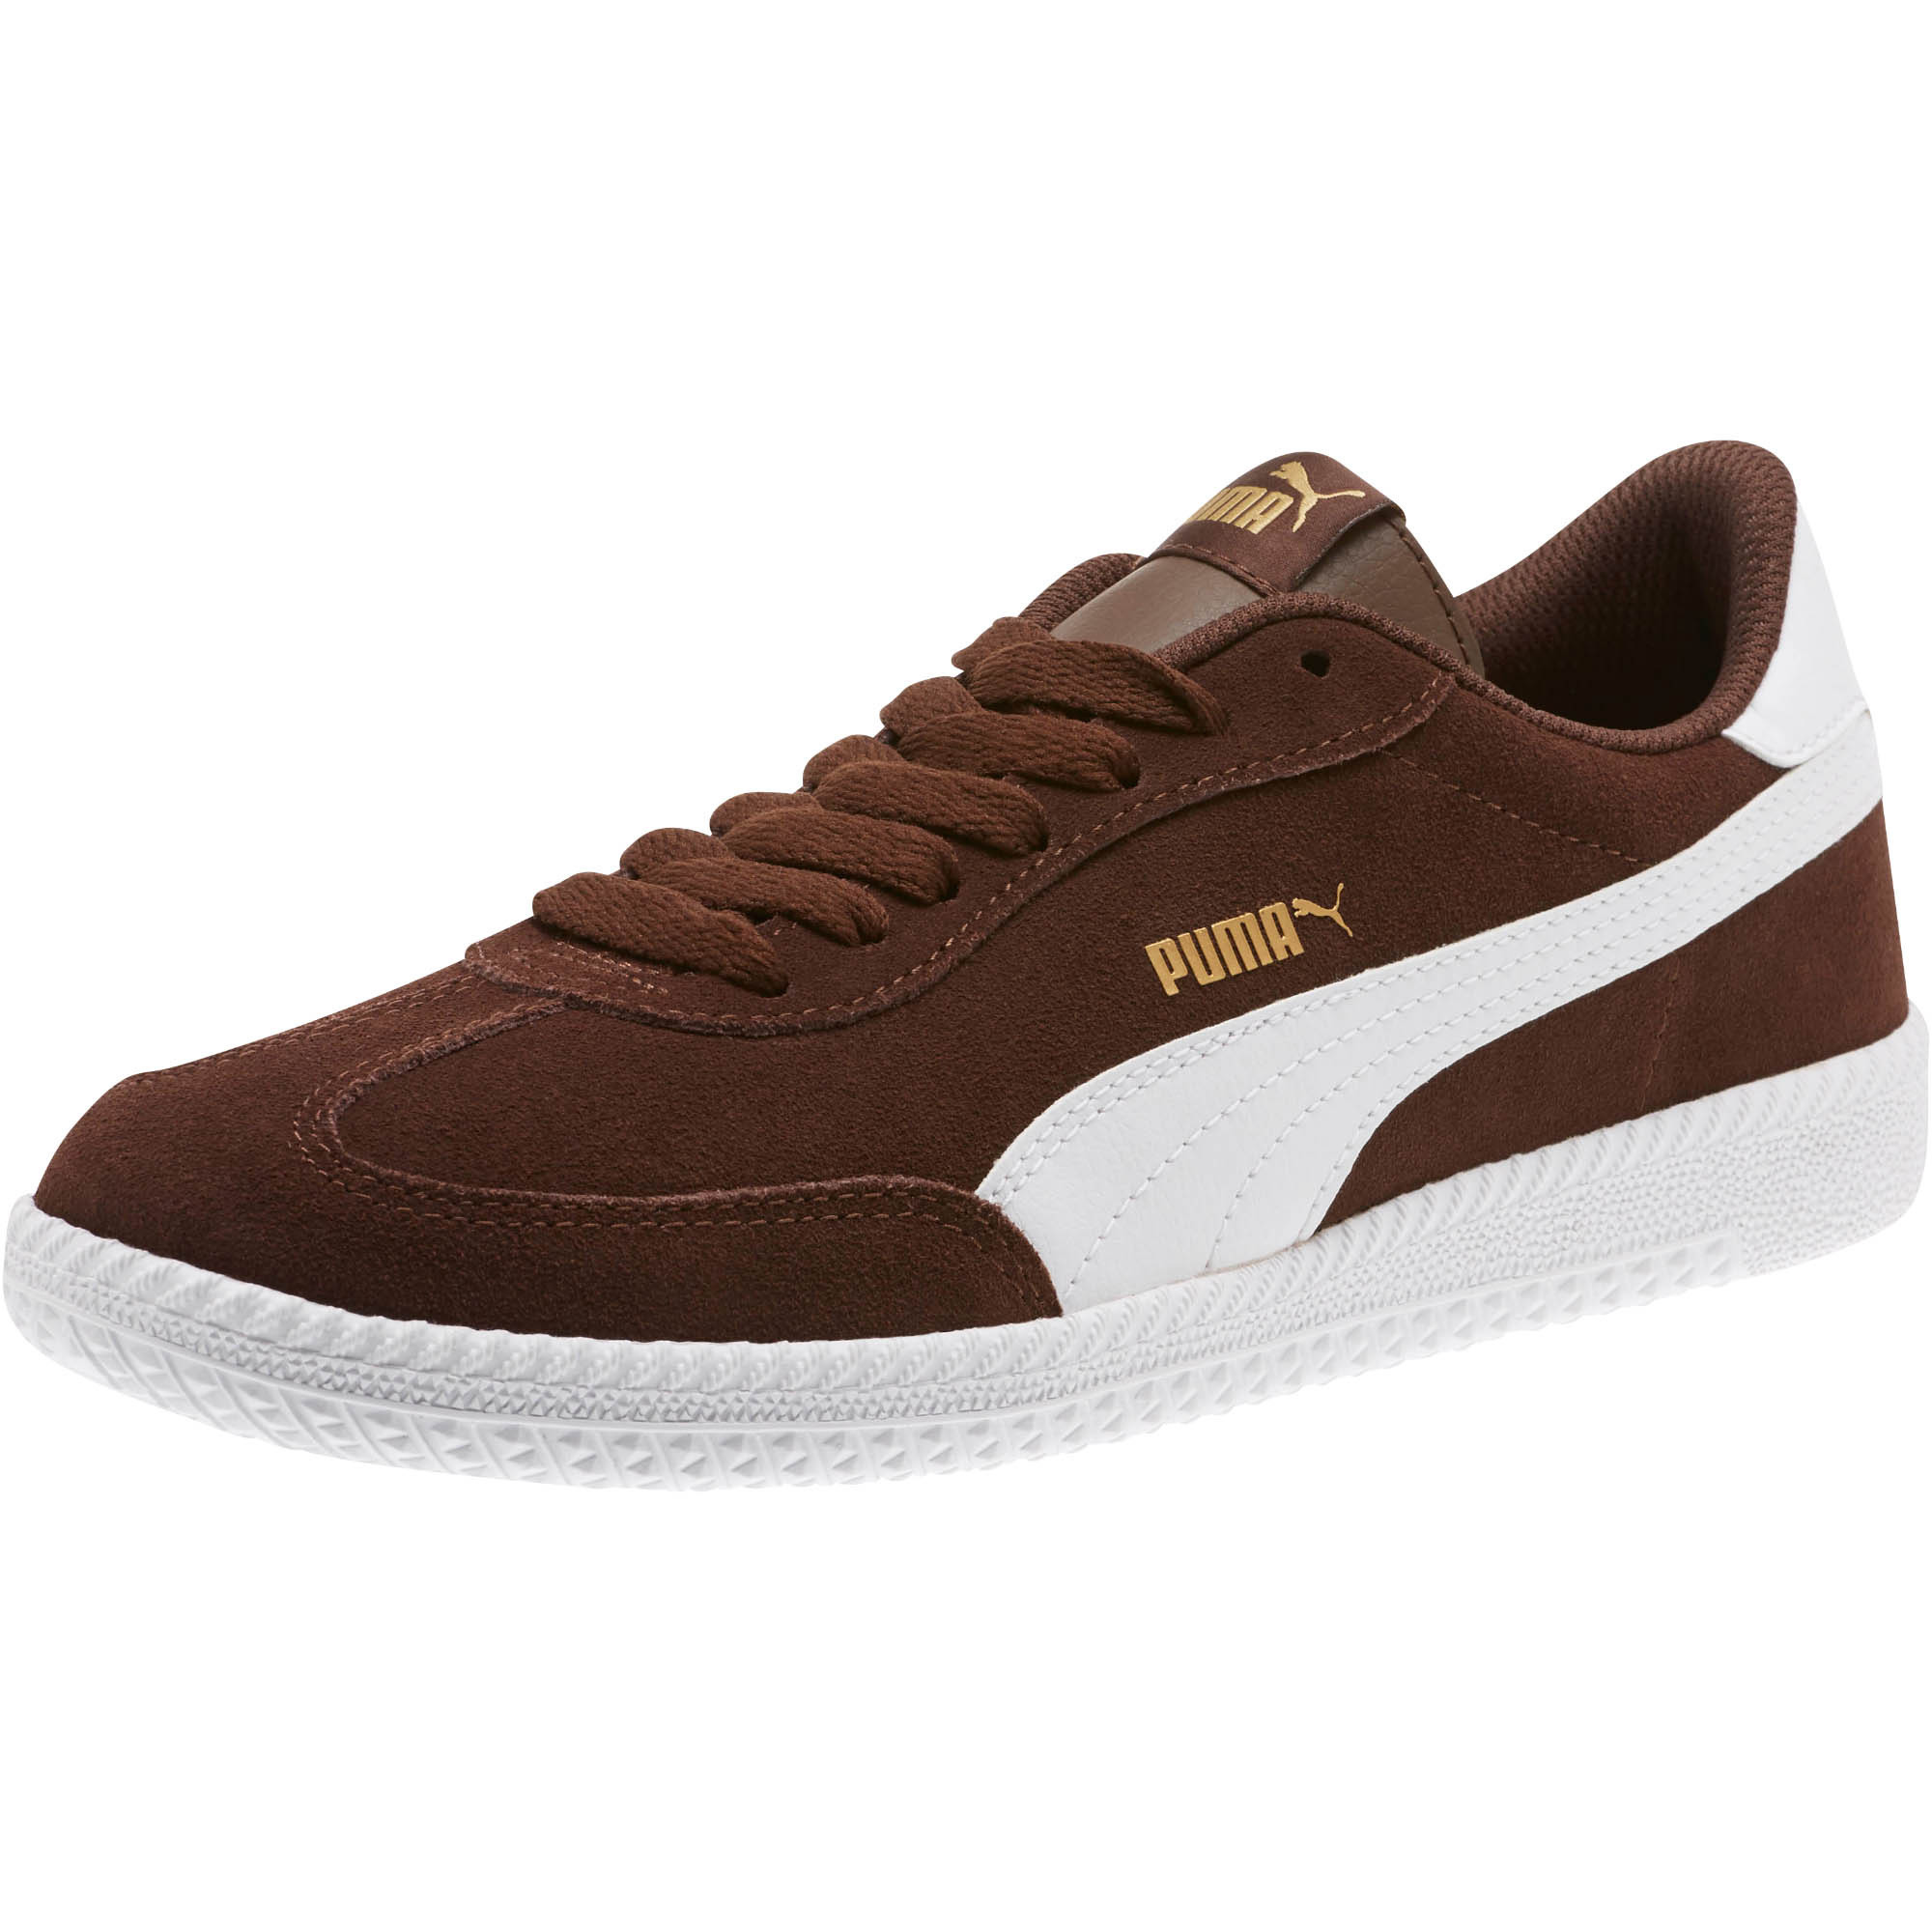 PUMA-Astro-Cup-Suede-Sneakers-Men-Shoe-Basics thumbnail 29